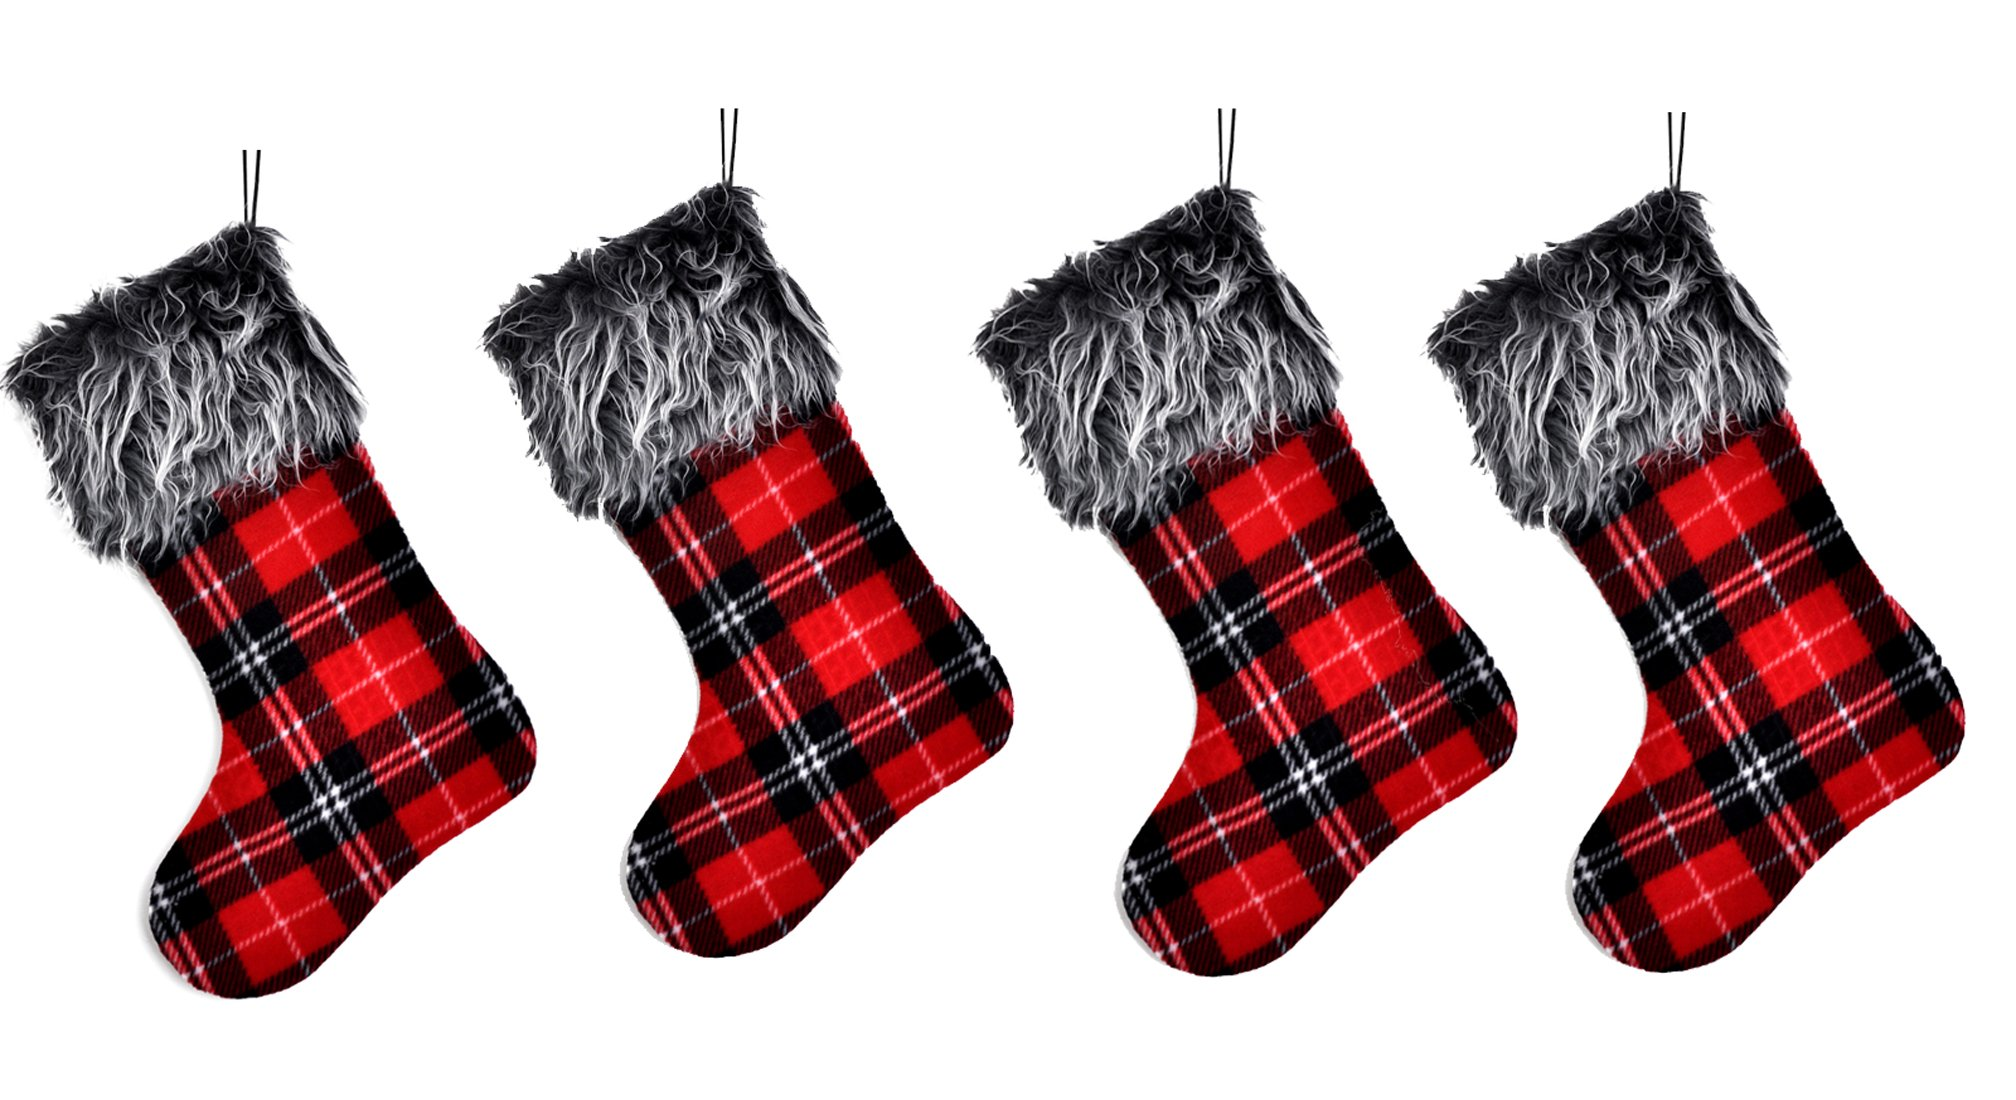 Welldone Buffalo Plaid Christmas Stockings Red Decoration - Best Gifts Decor for Home